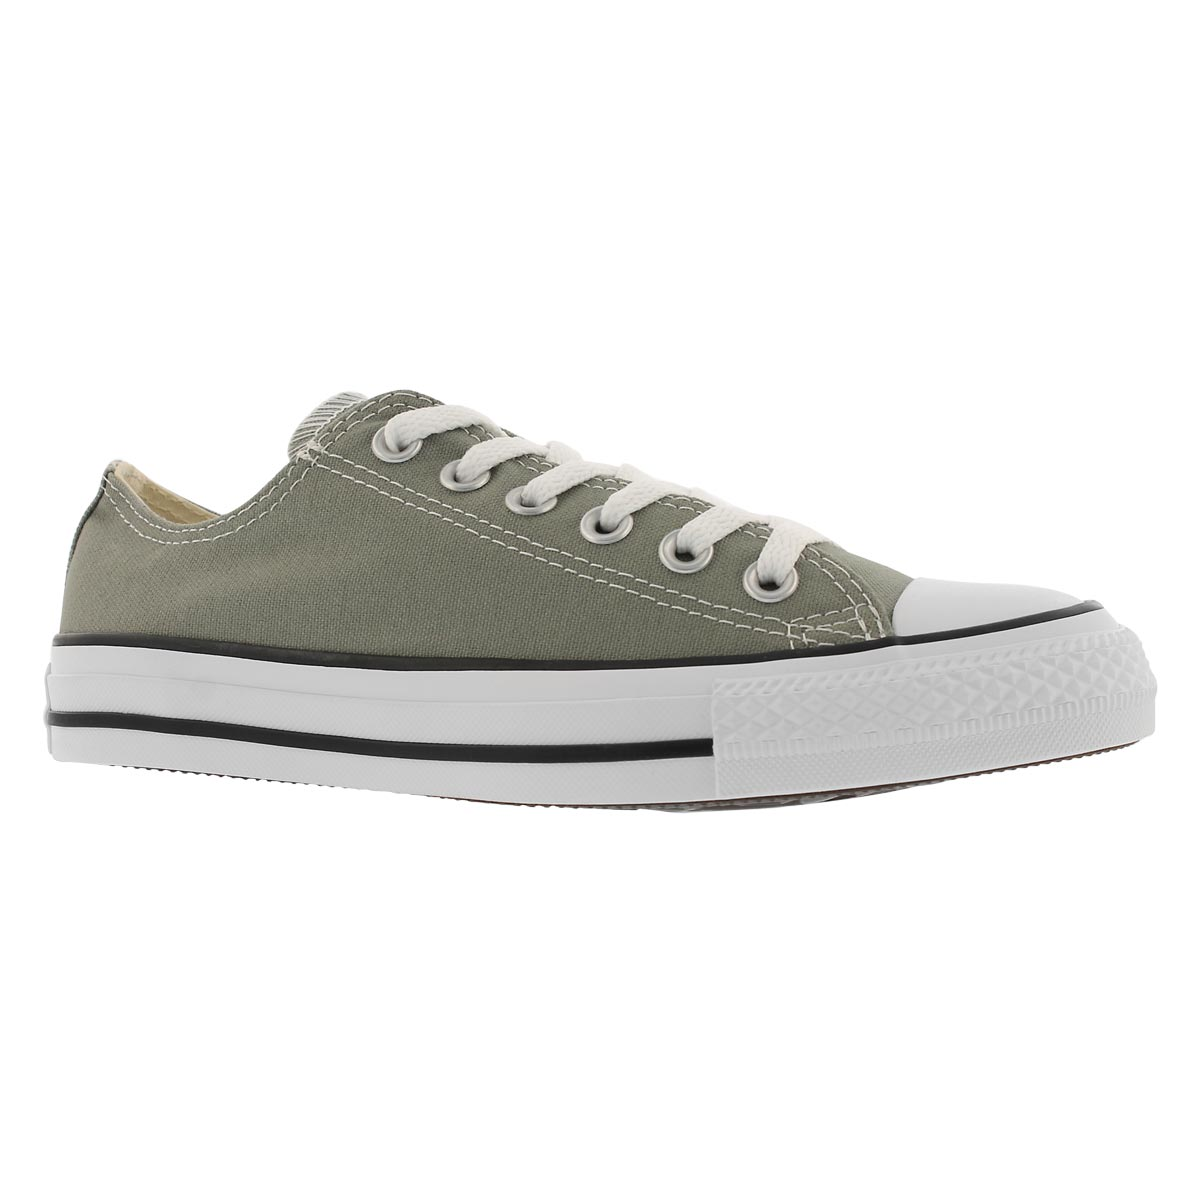 Women's CT ALL STAR SEASONAL dark stucco sneakers